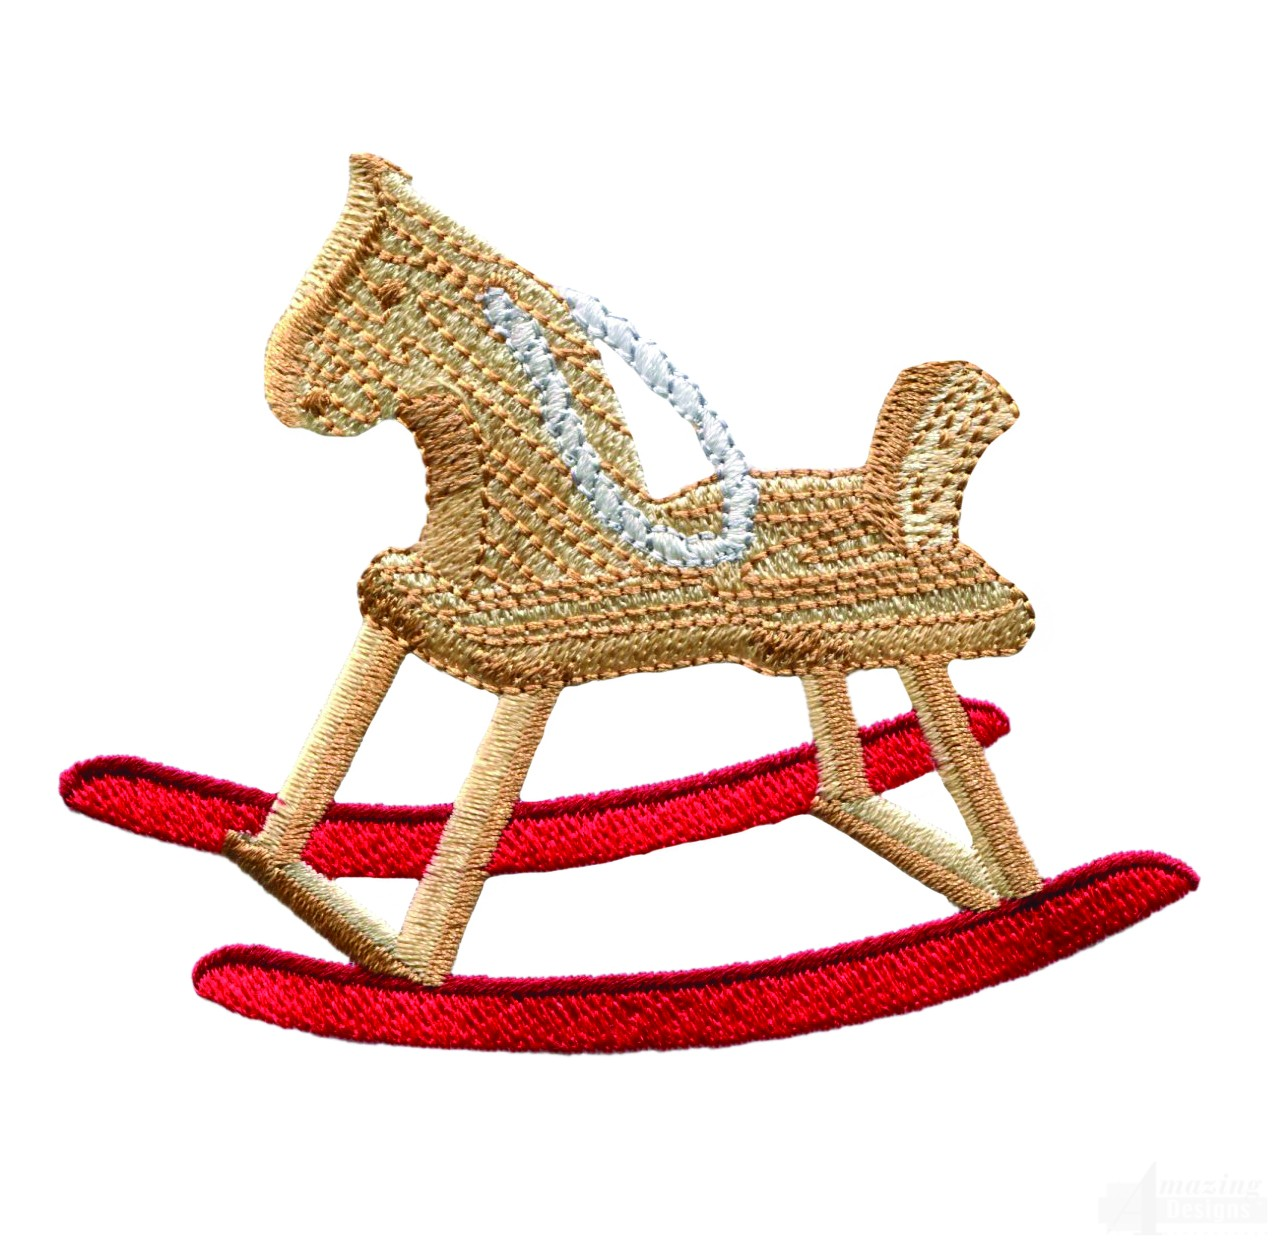 Rocking Horse Embroidery Design Image Mag